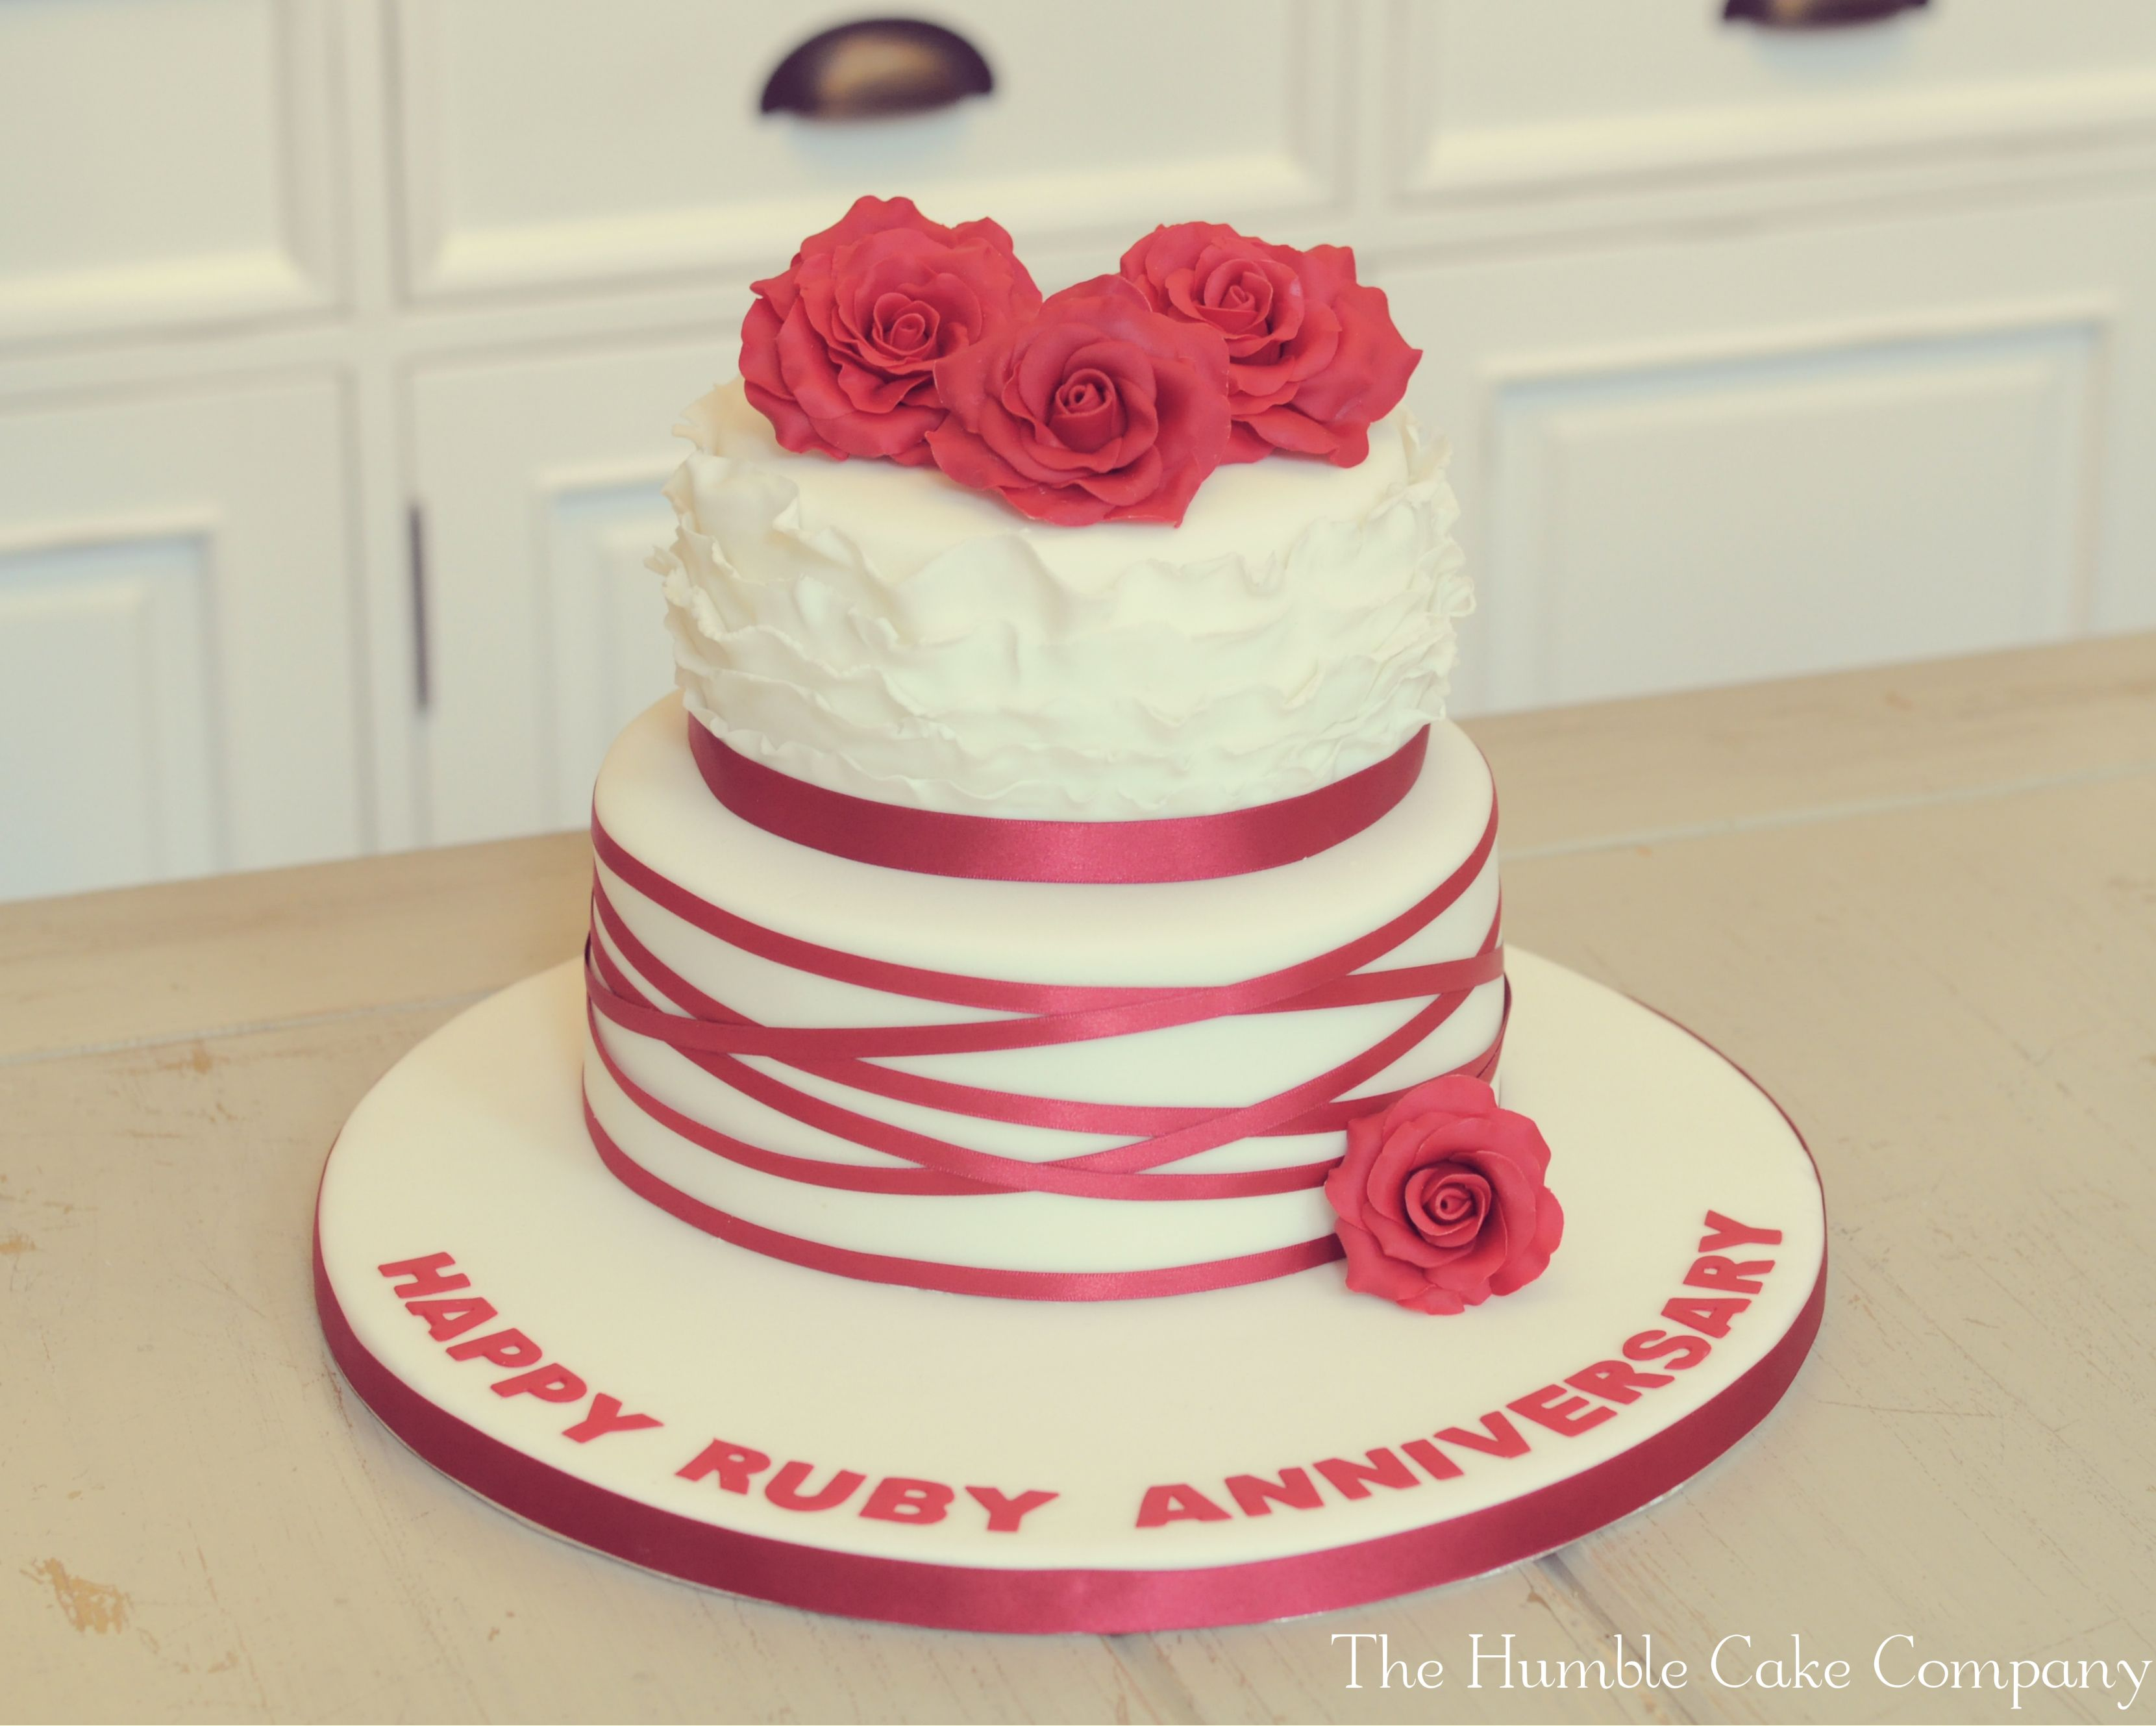 top tier wedding cake anniversary ruby wedding anniversary cake by the humble cake company 21073